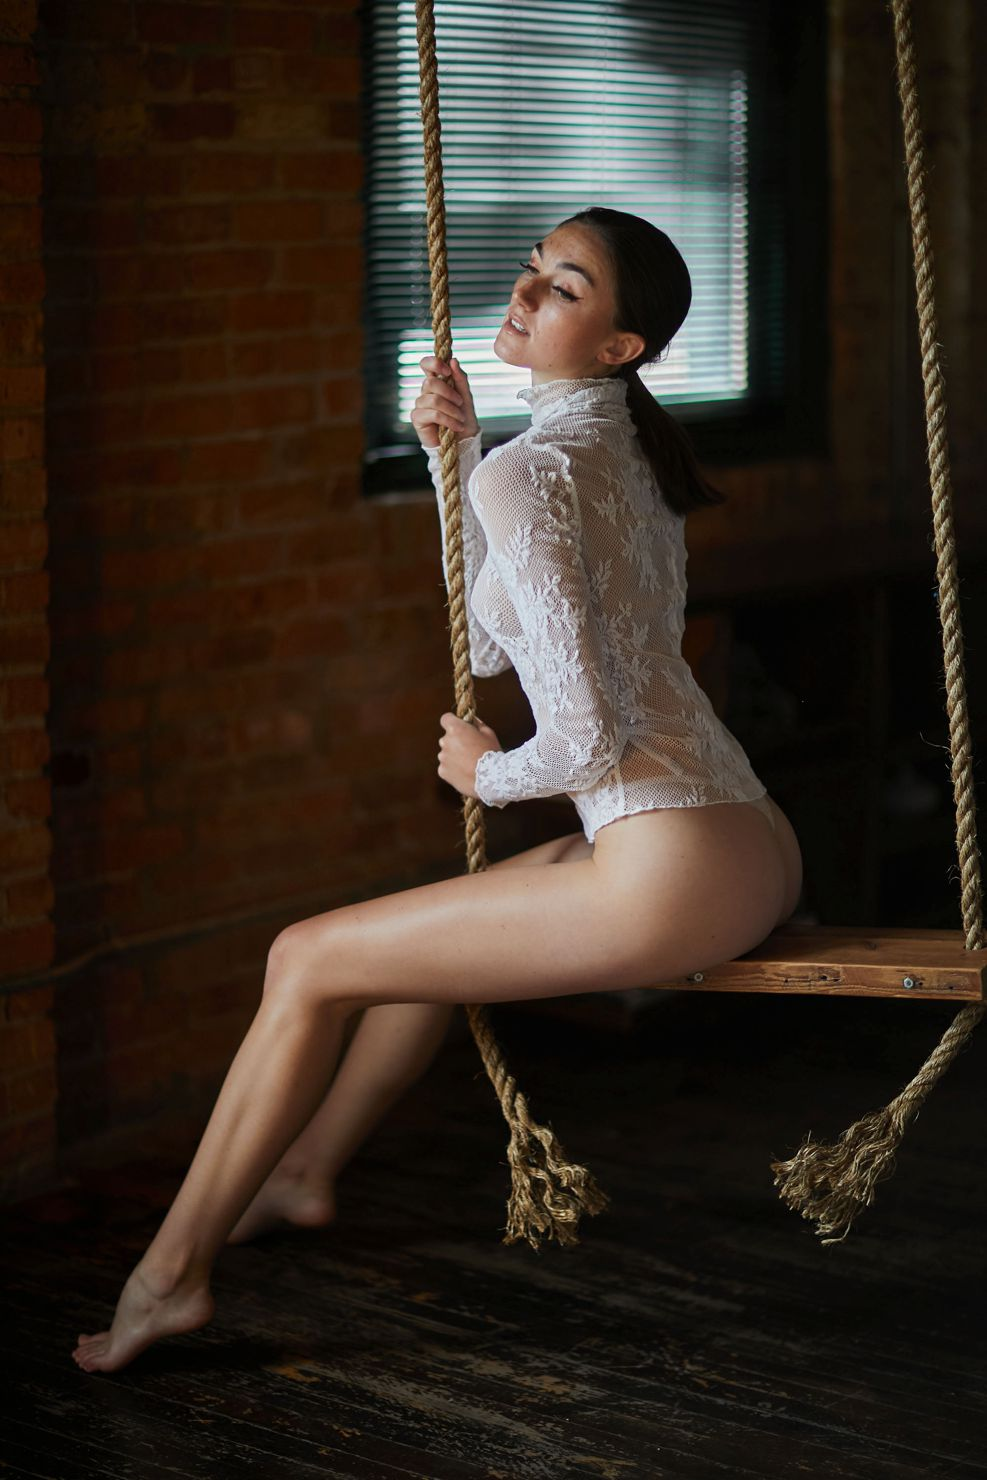 chicago boudoir studio photography - Boudoir Photography and the Art of Storytelling.